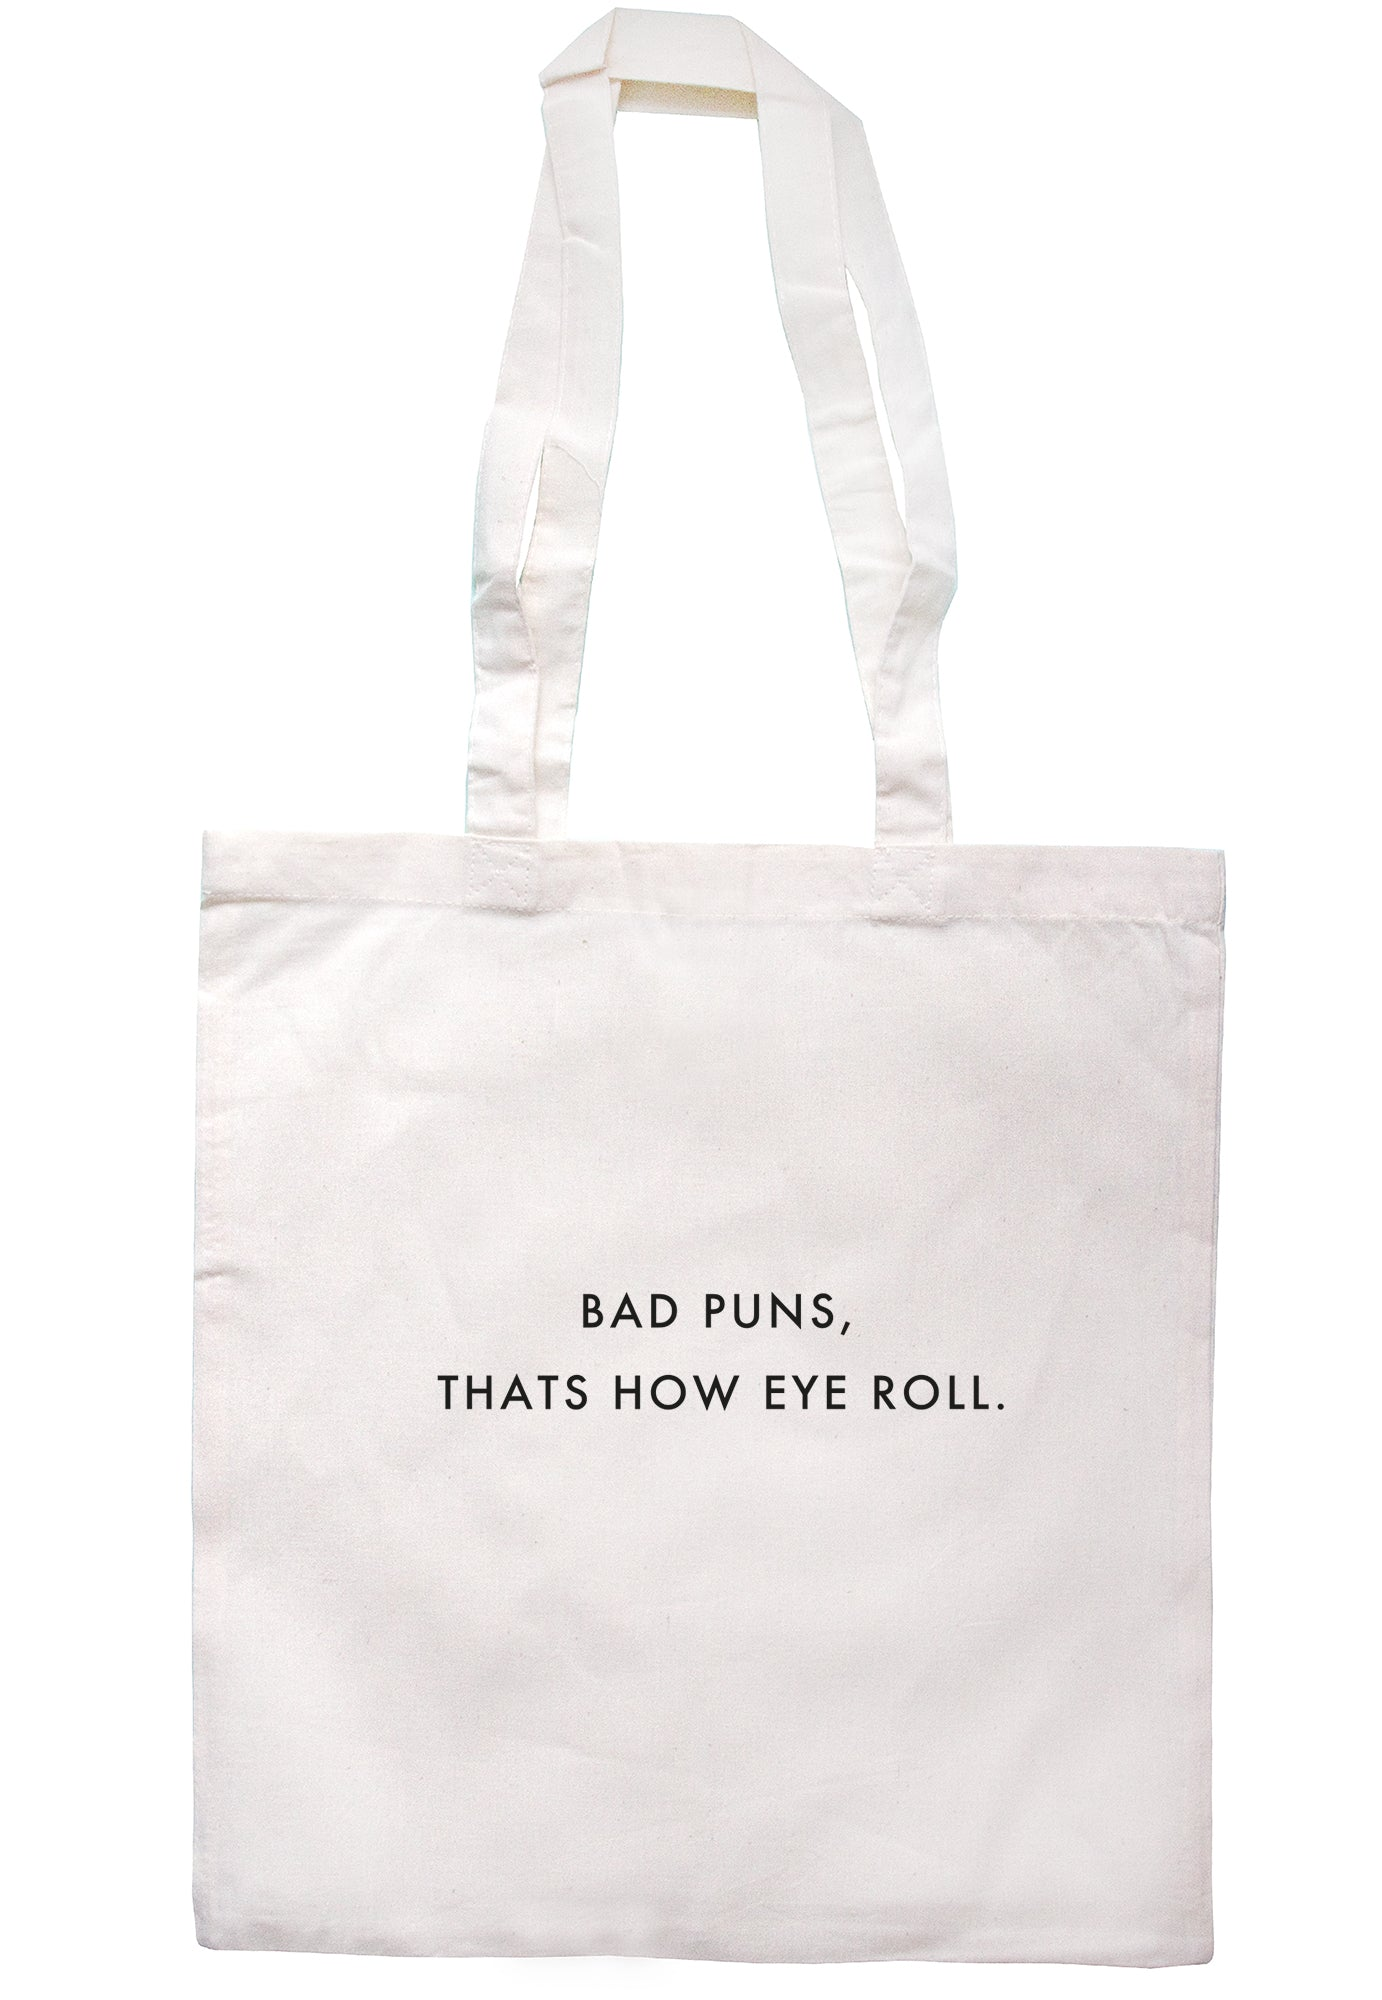 Bad Puns, Thats How Eye Roll. Tote Bag S0990 - Illustrated Identity Ltd.